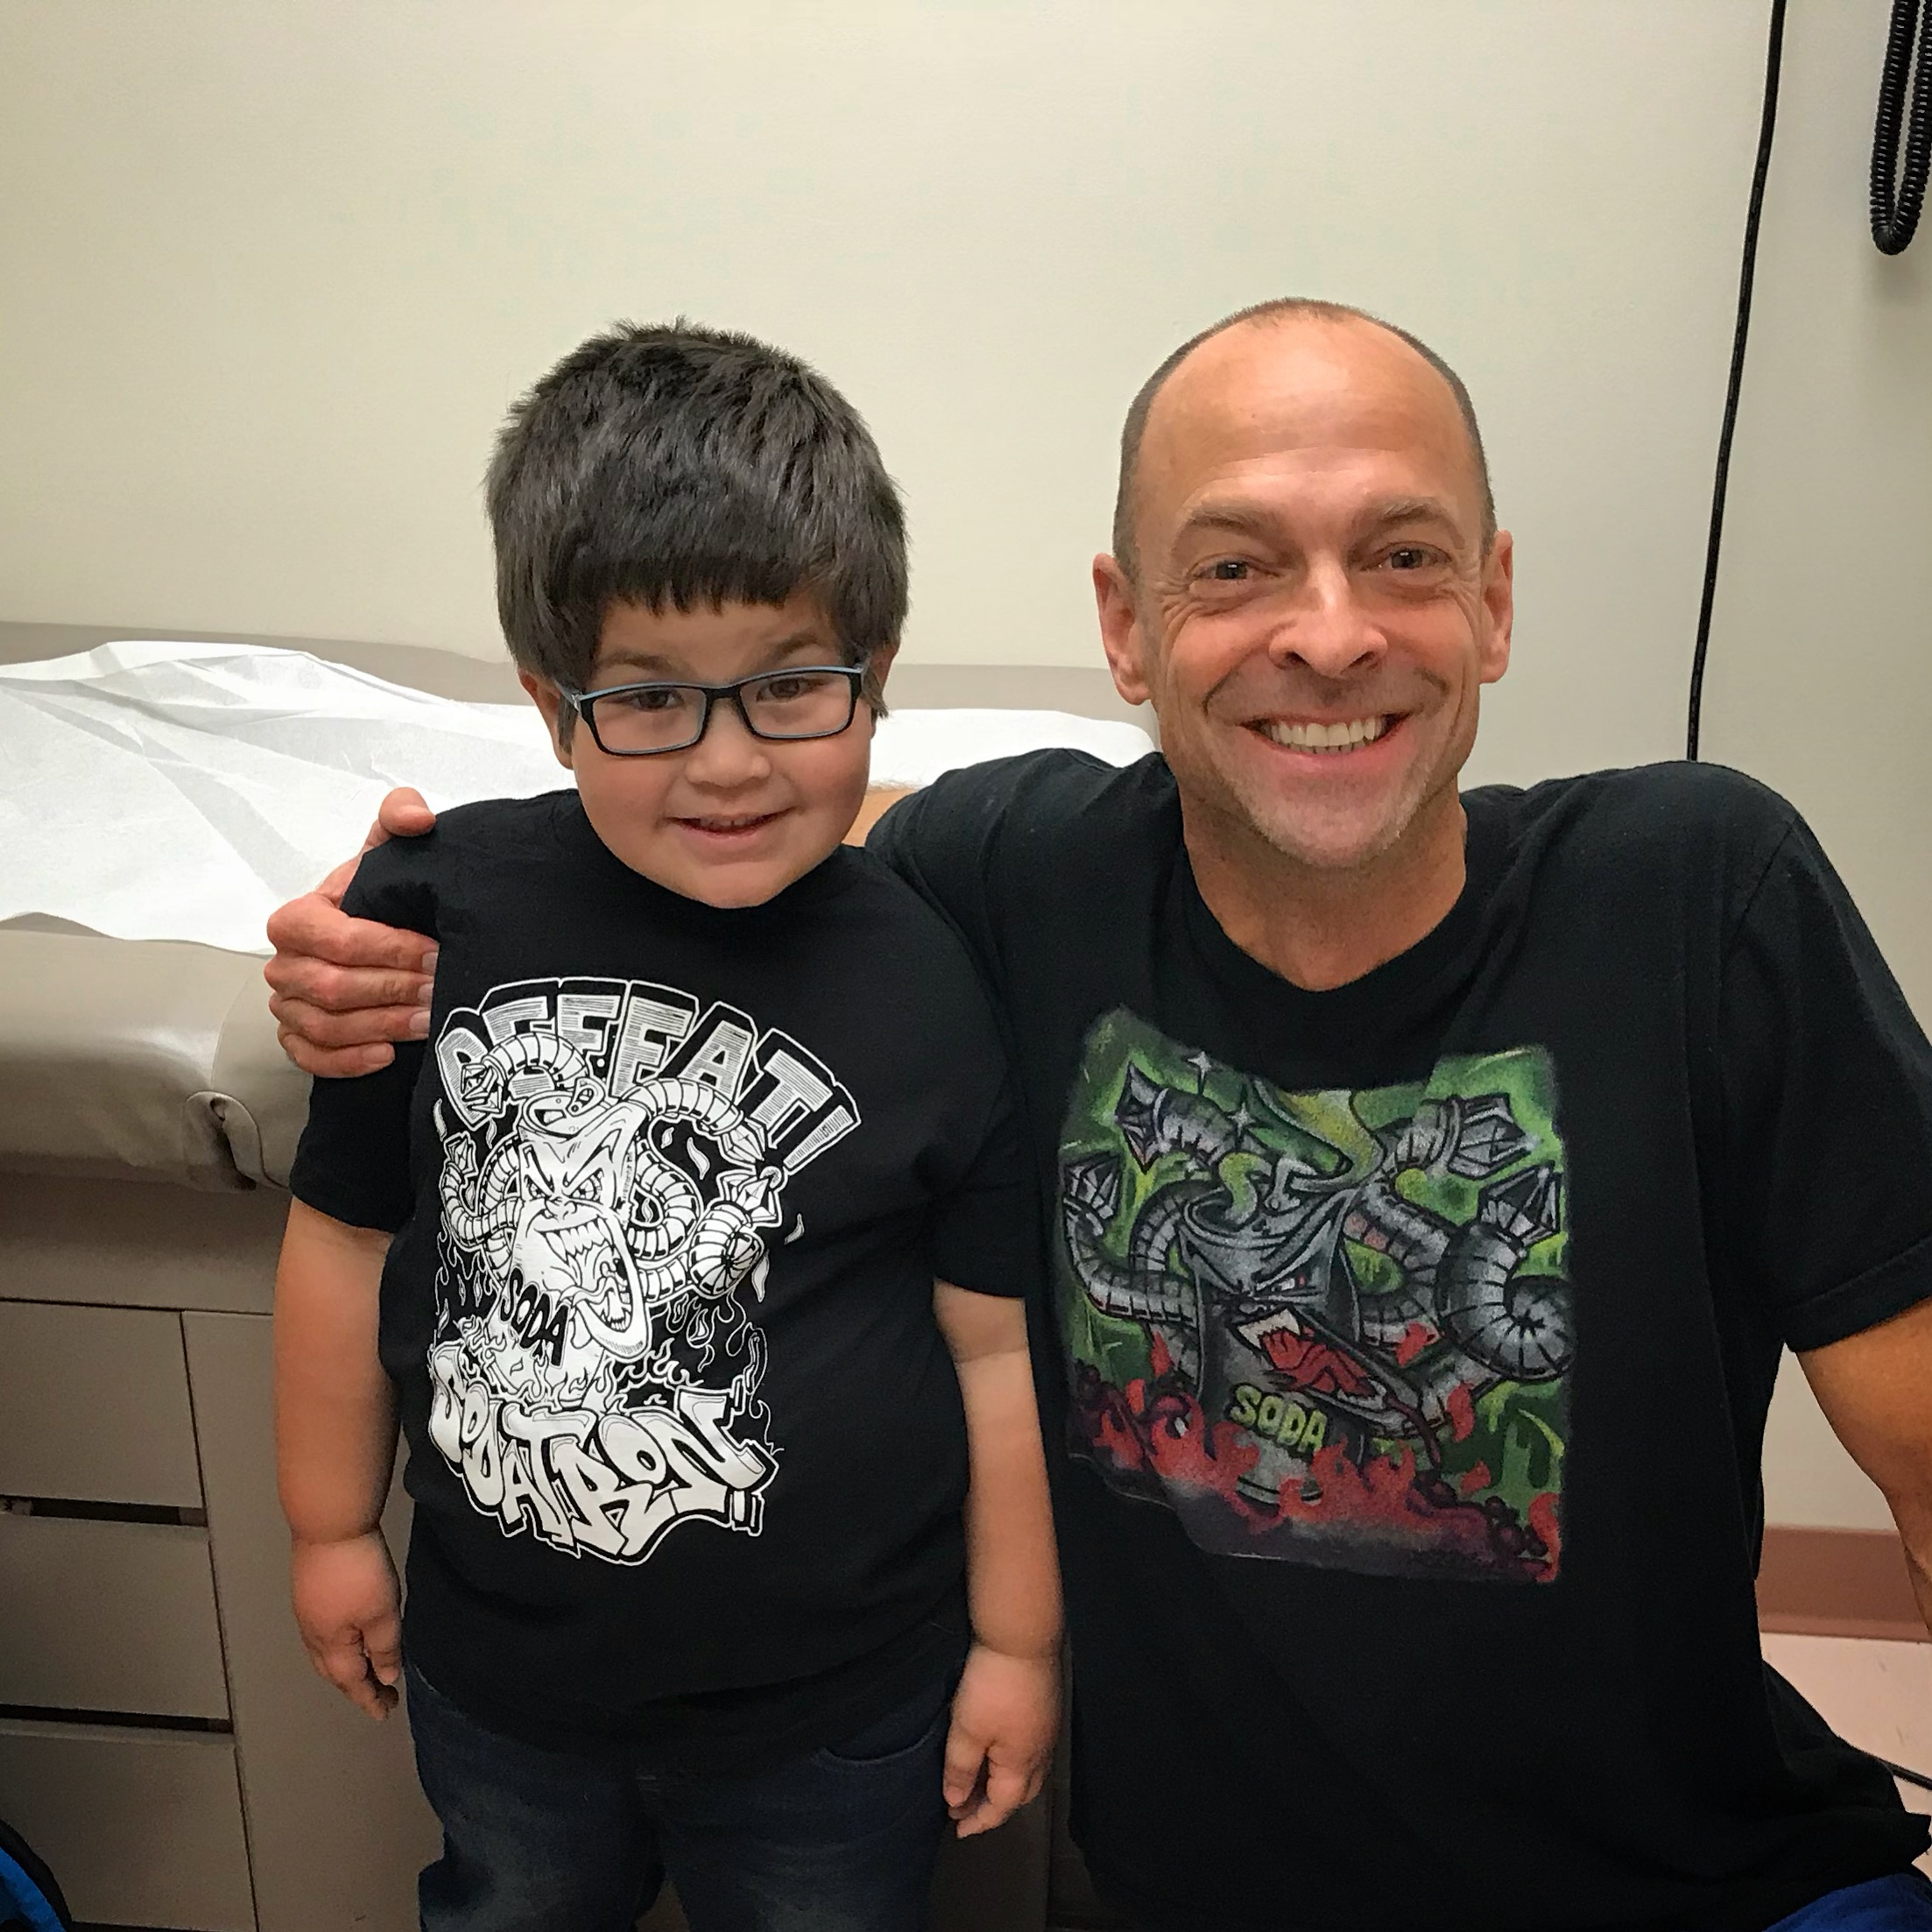 Dr. Kevin Strong celebrates with a proud patient who has one year soda free.